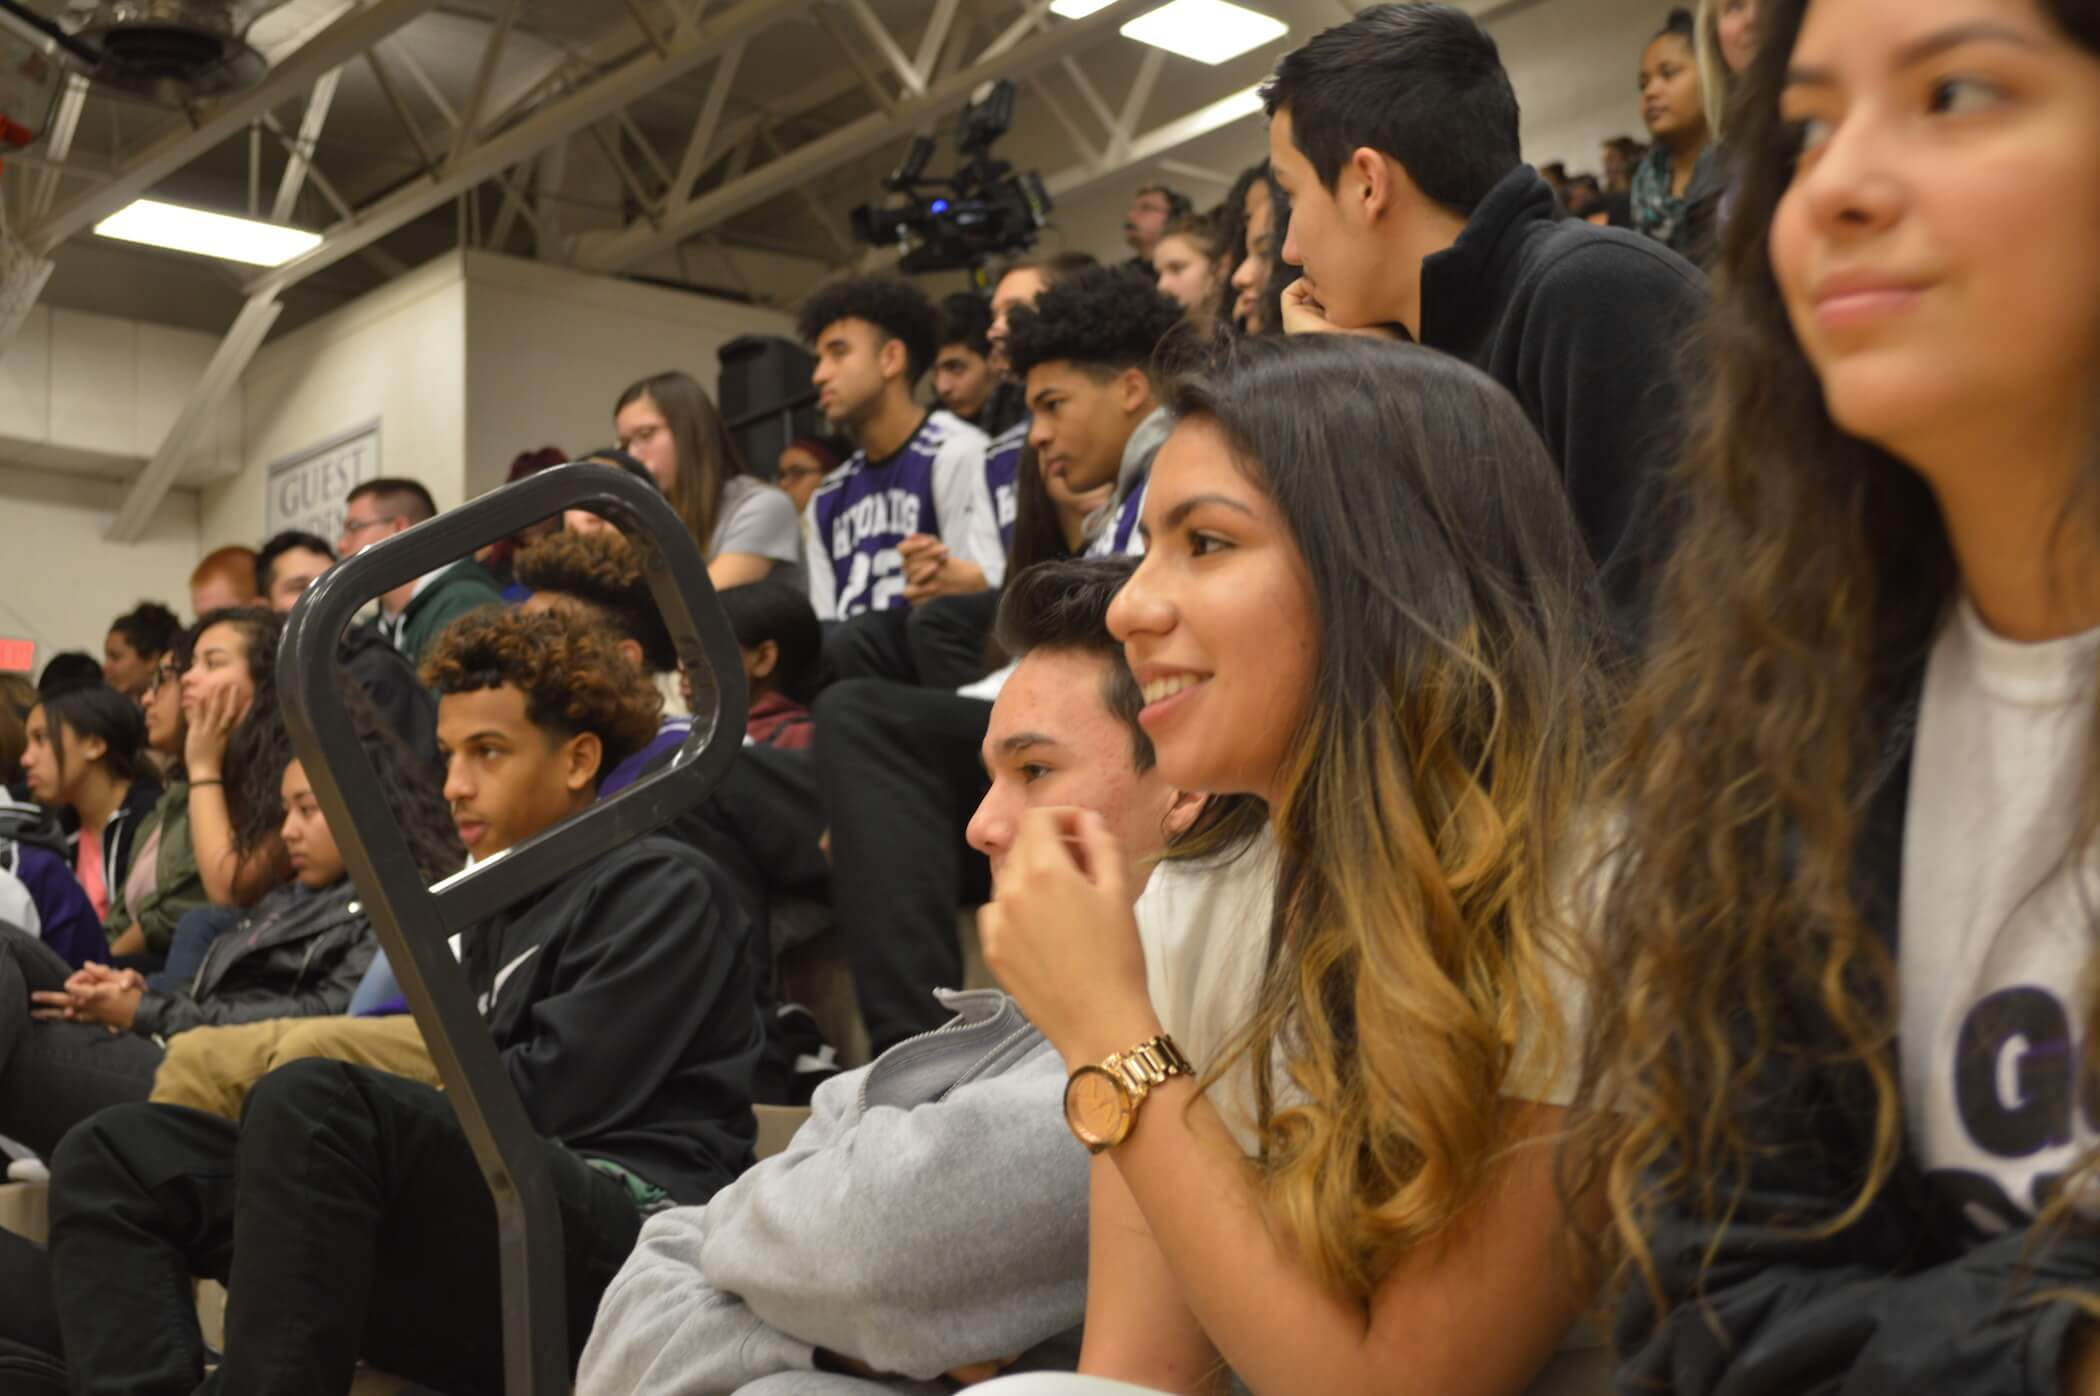 Photo of students sitting on bleachers inside gymnasium attending an assembly.